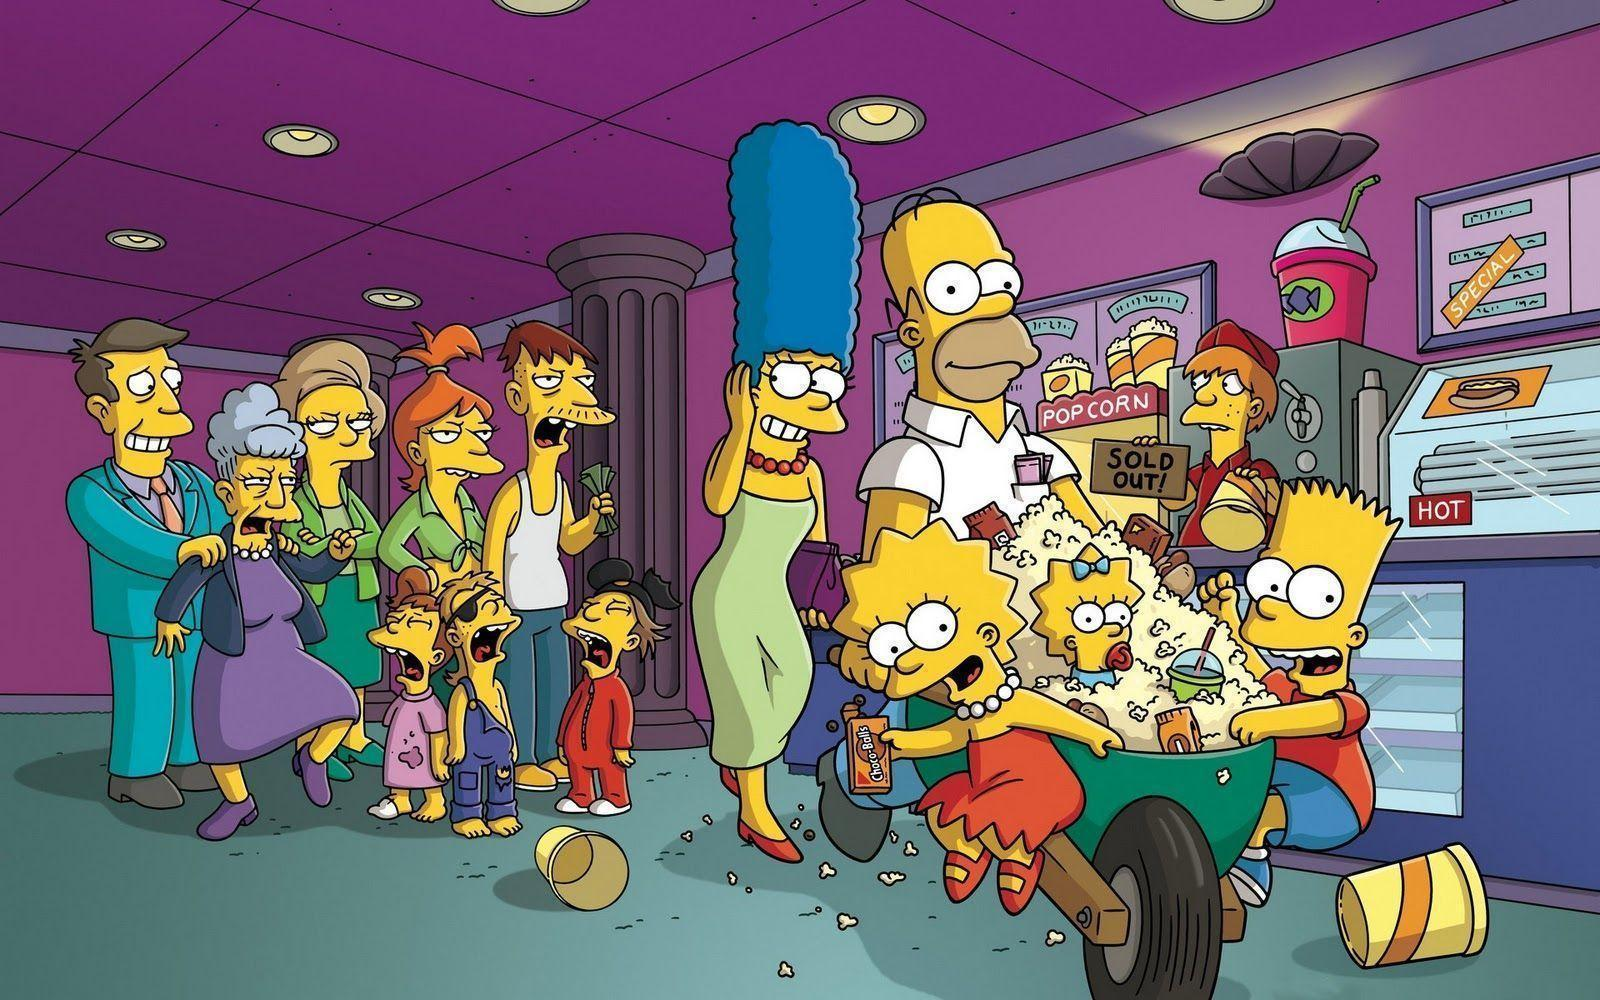 349 The Simpsons Wallpapers | The Simpsons Backgrounds Page 9